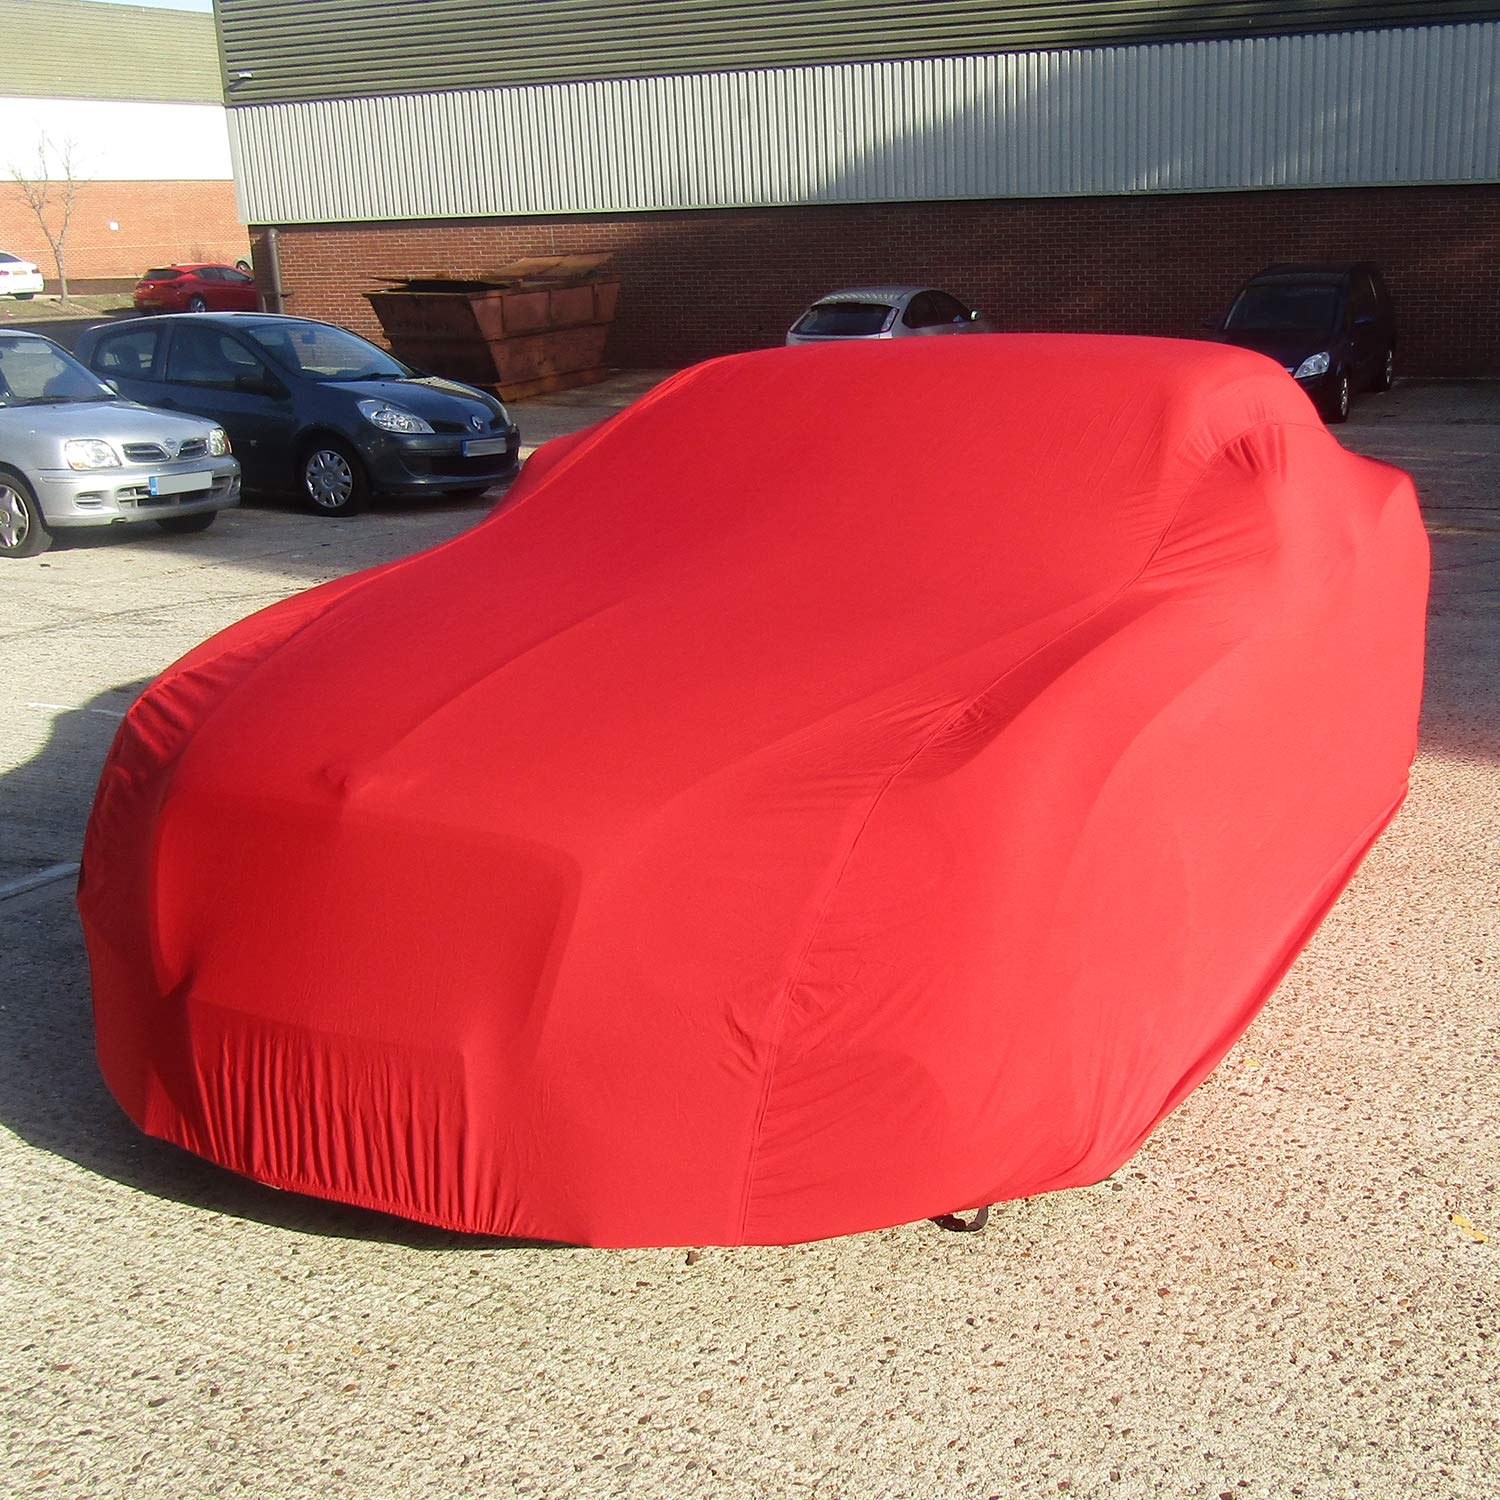 Automotive DELUXE Indoor Car Cover Super Soft breathable 130gsm Elastic Fabric Red, Medium